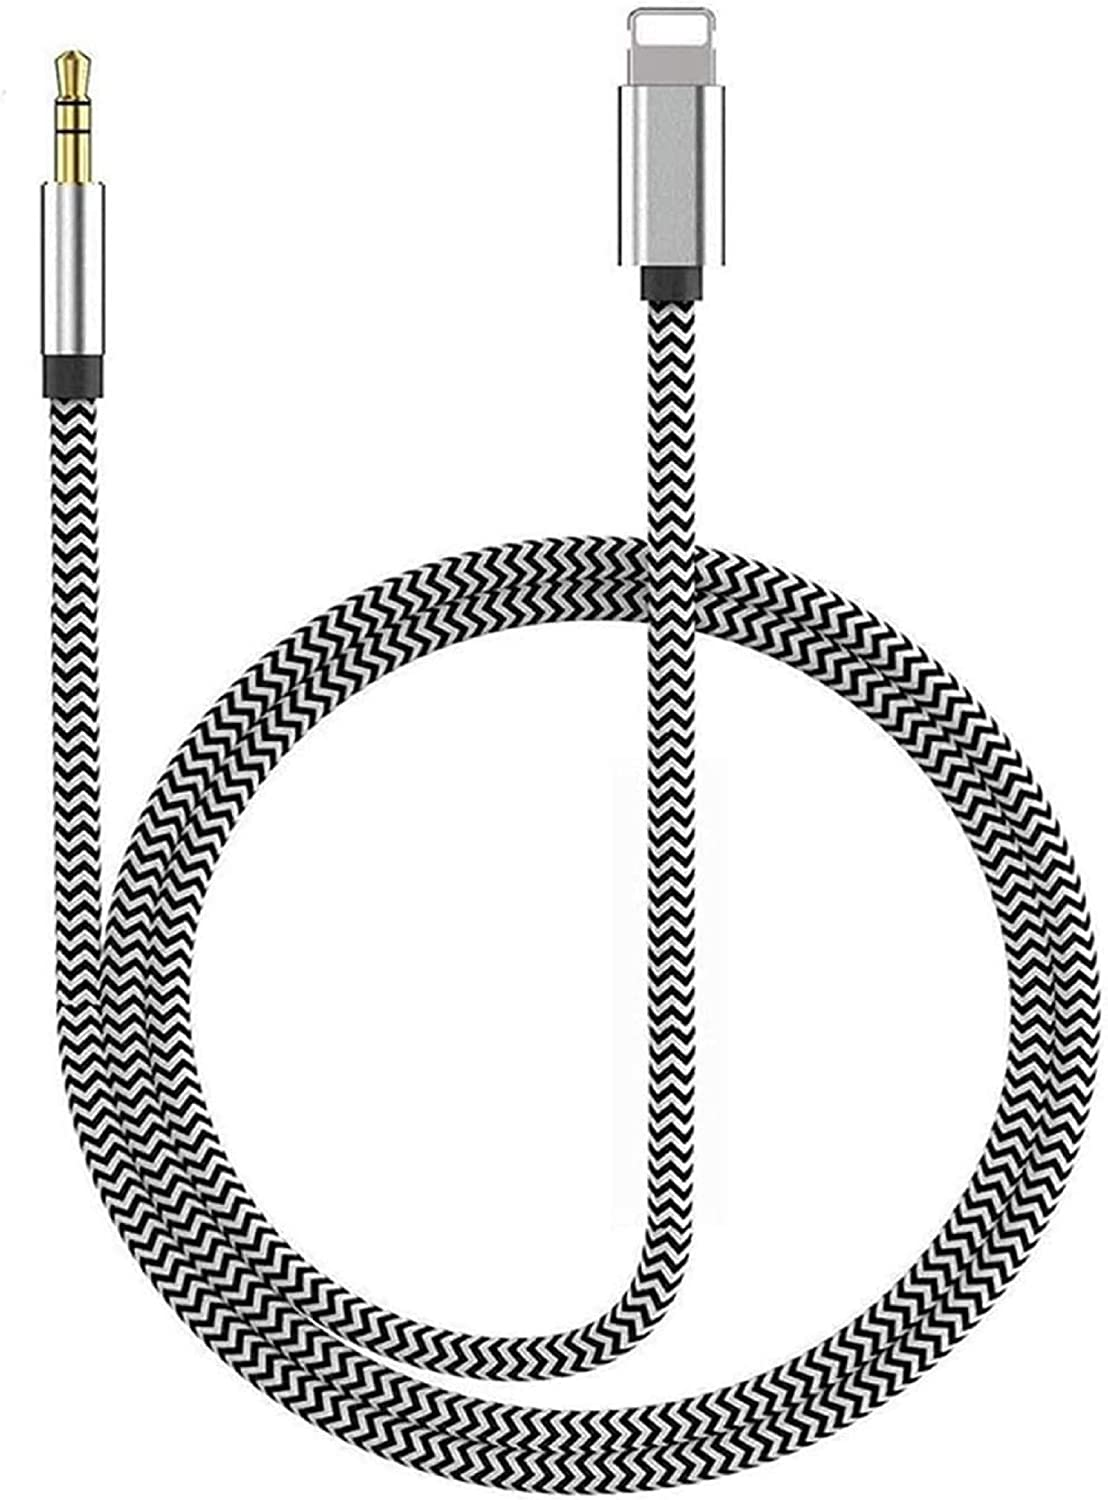 [Apple MFi Certified] Aux Cord for iPhone, Lightning to Aux Cable for Car 3.5mm Jack Auxiliary Cable Compatible with iPhone 12/11/X/Xs/Xr/8/7/iPad Nylon Braided for Headphone,Car/Home Stereo, Speaker